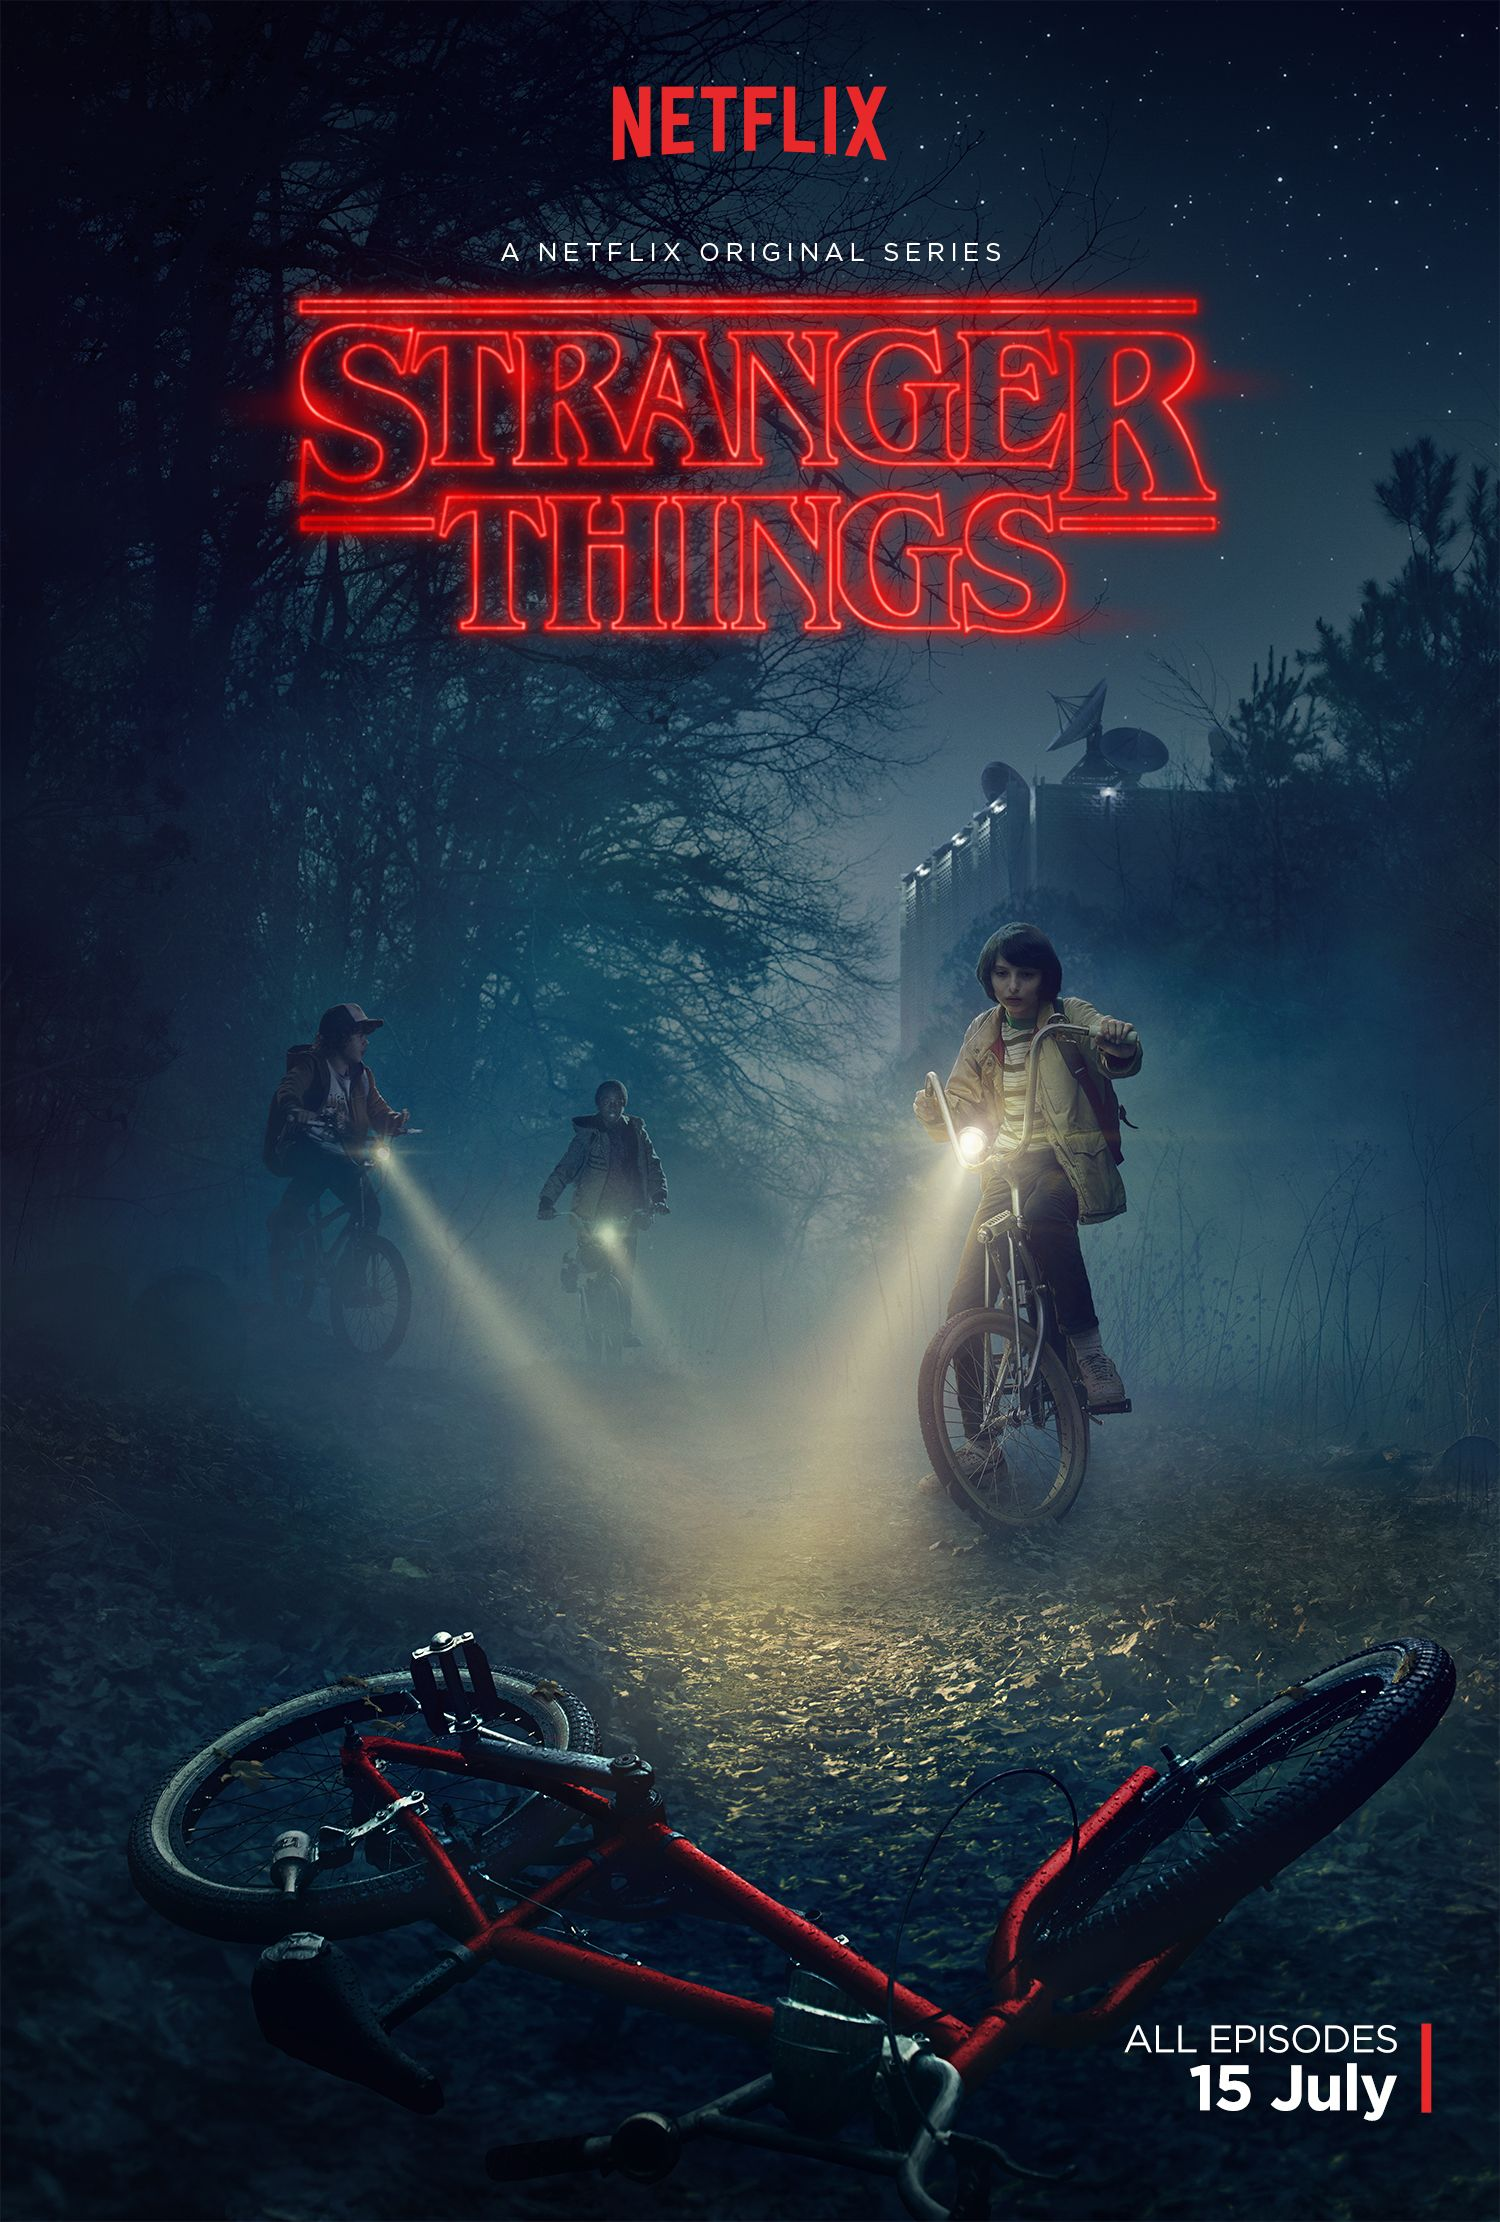 Stranger Things (2016) This is the BEST SHOW I've seen in a long time. I binged on Netflix and watched it all in one night. Sleep? Who needs it...😀